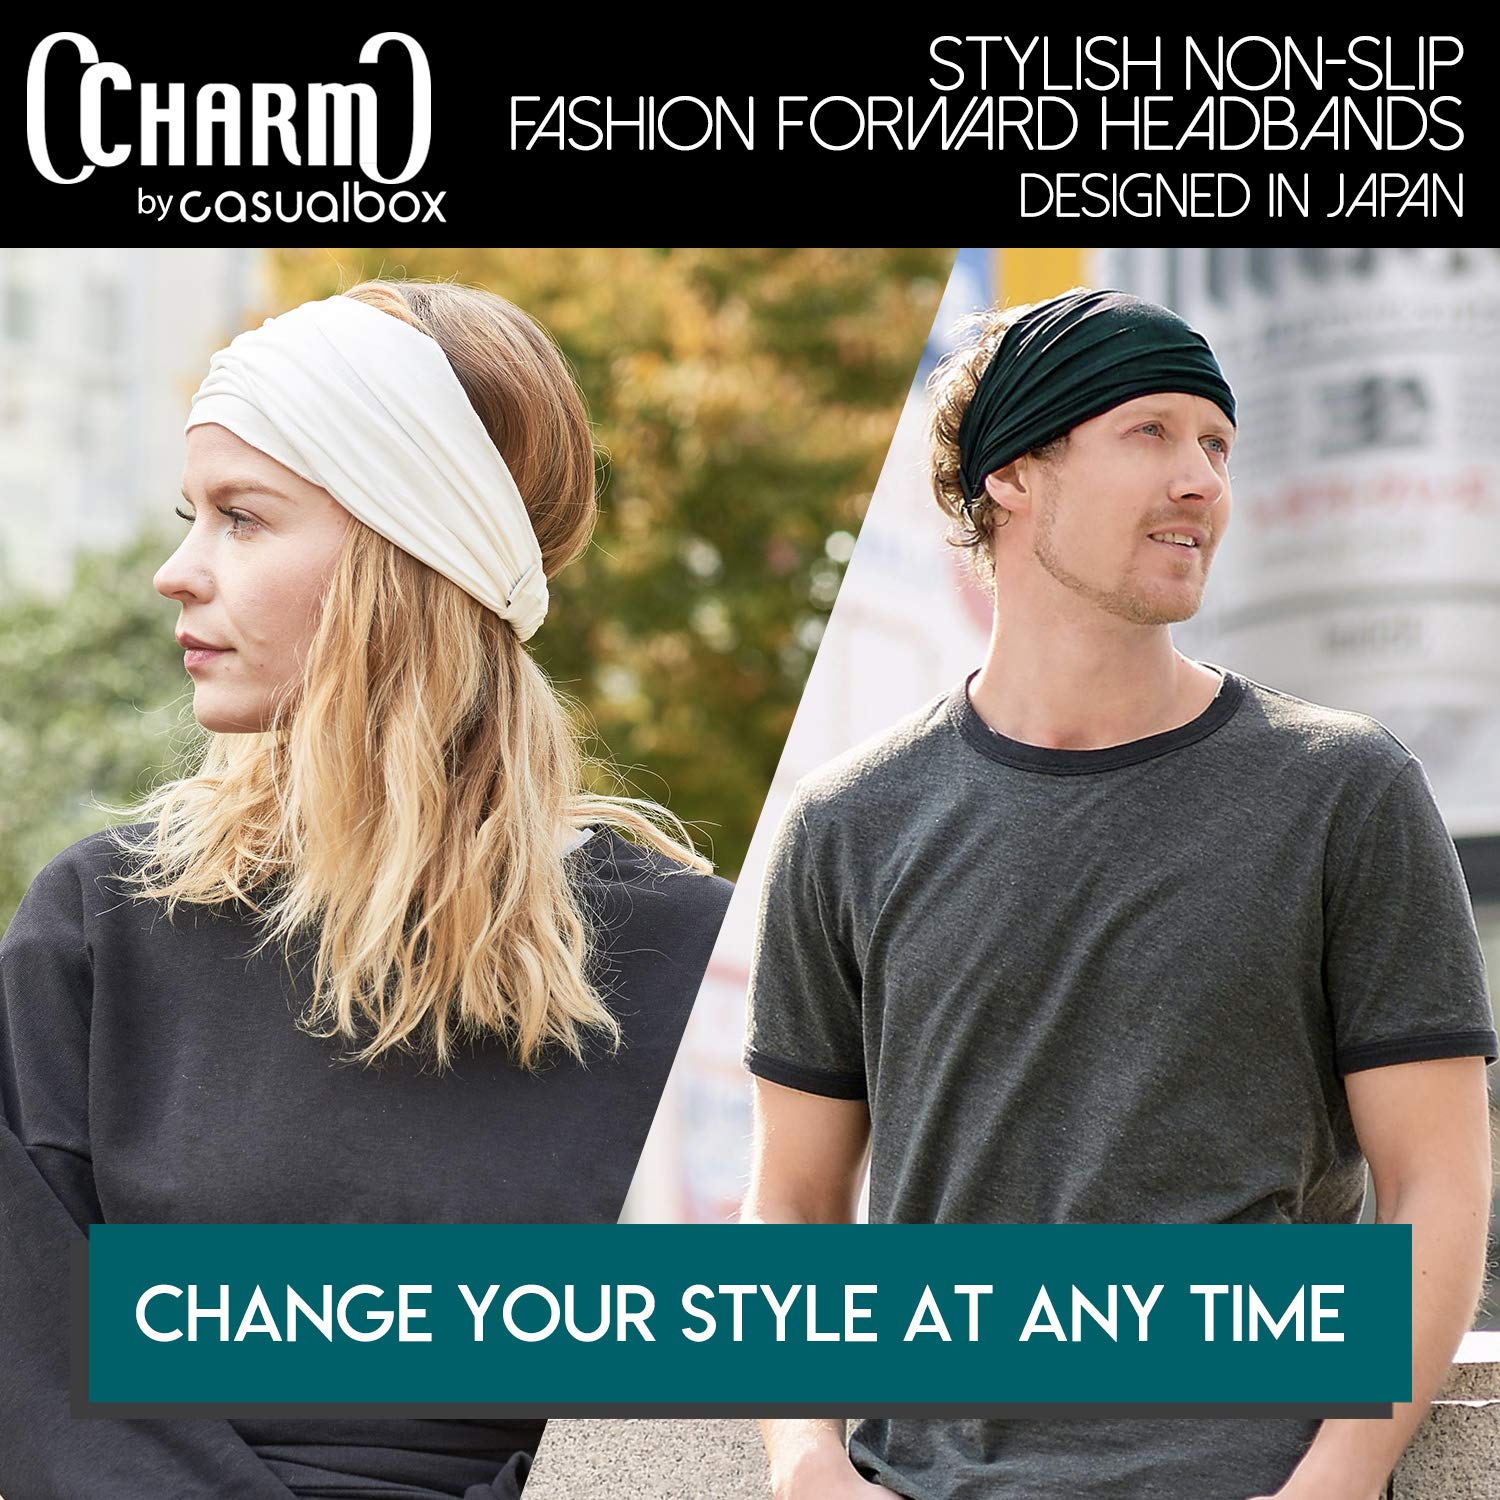 Black Japanese Bandana Headbands for Men and Women – Comfortable Head Bands with Elastic Secure Snug Fit Ideal Runners Fitness Sports Football Tennis Stylish Lightweight M by CCHARM (Image #8)